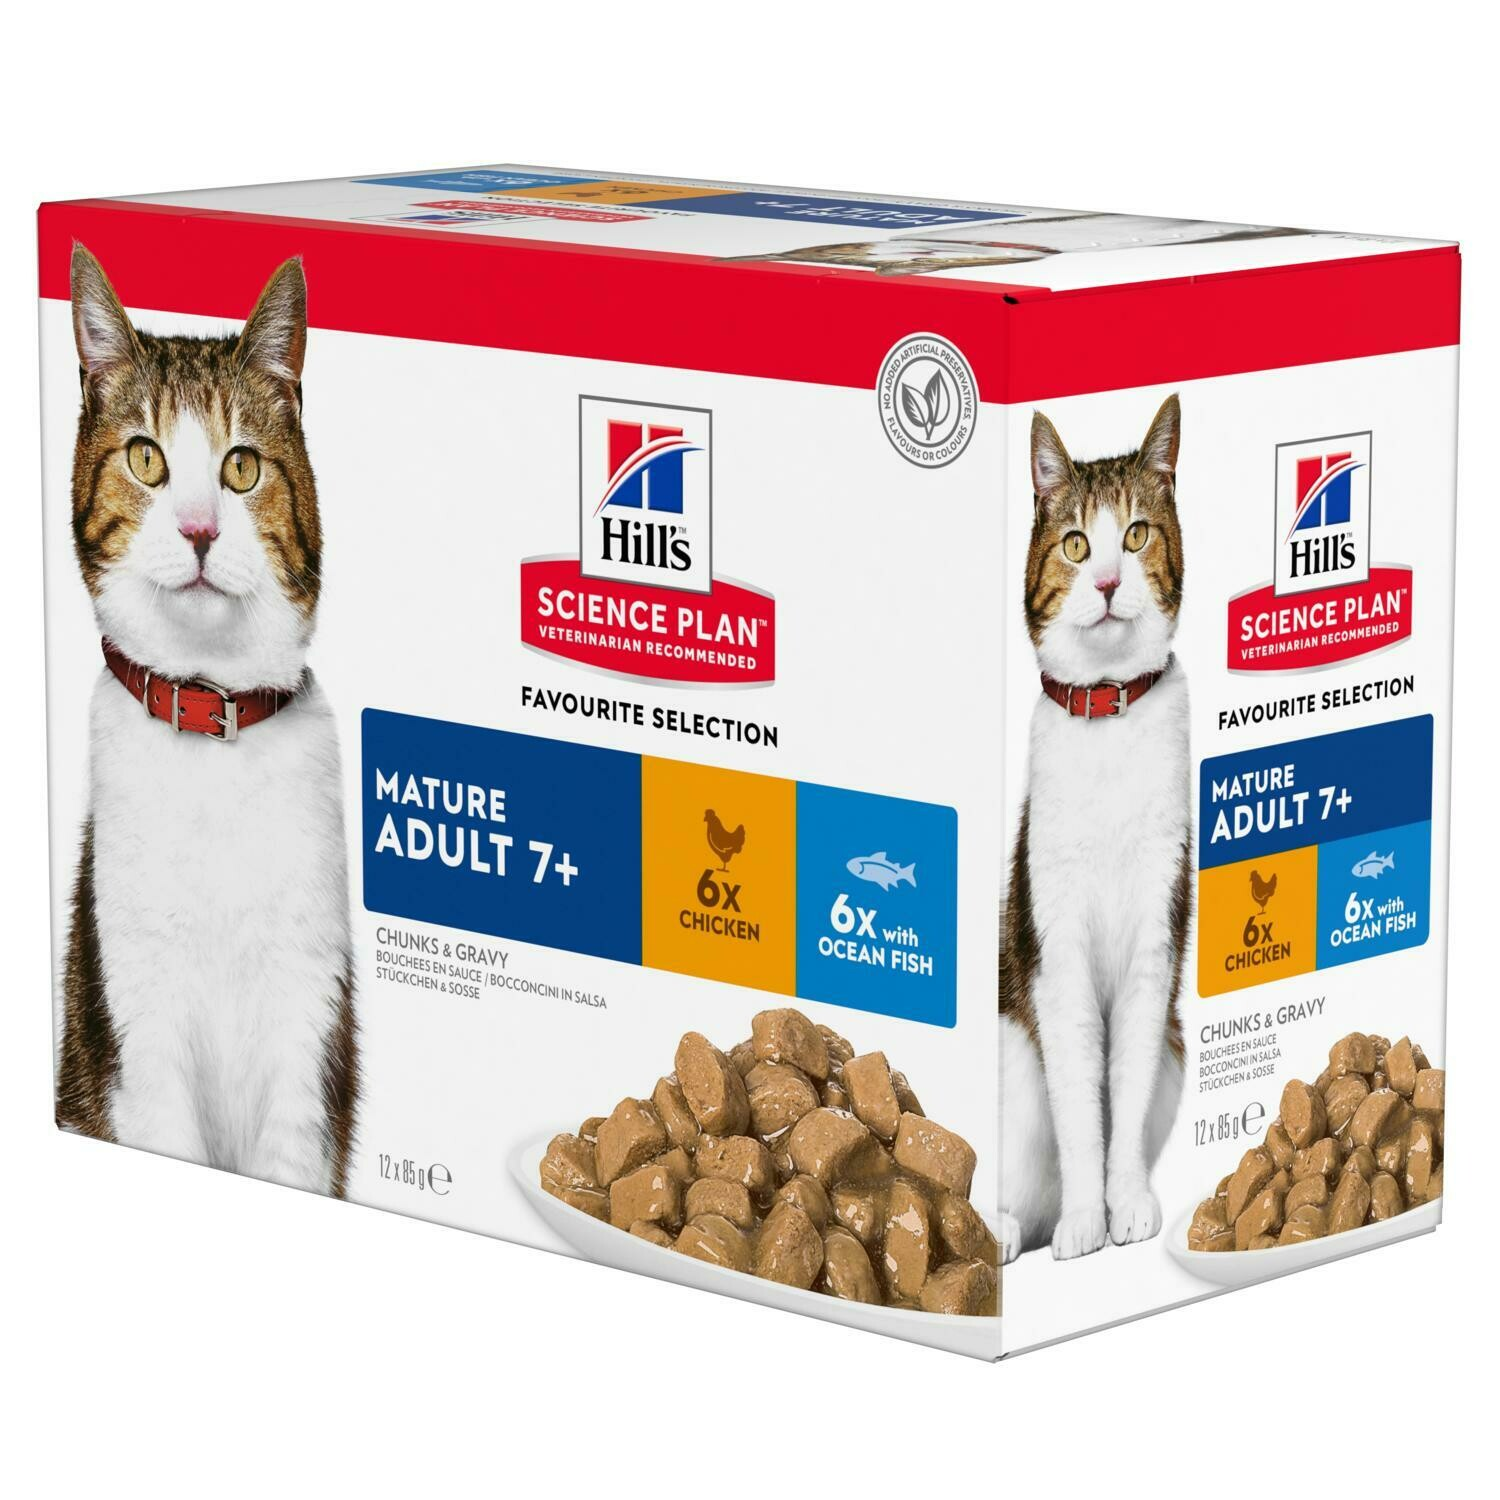 Hill's Science Plan Mature Adult Wet Food Chicken & Ocean Fish Flavour